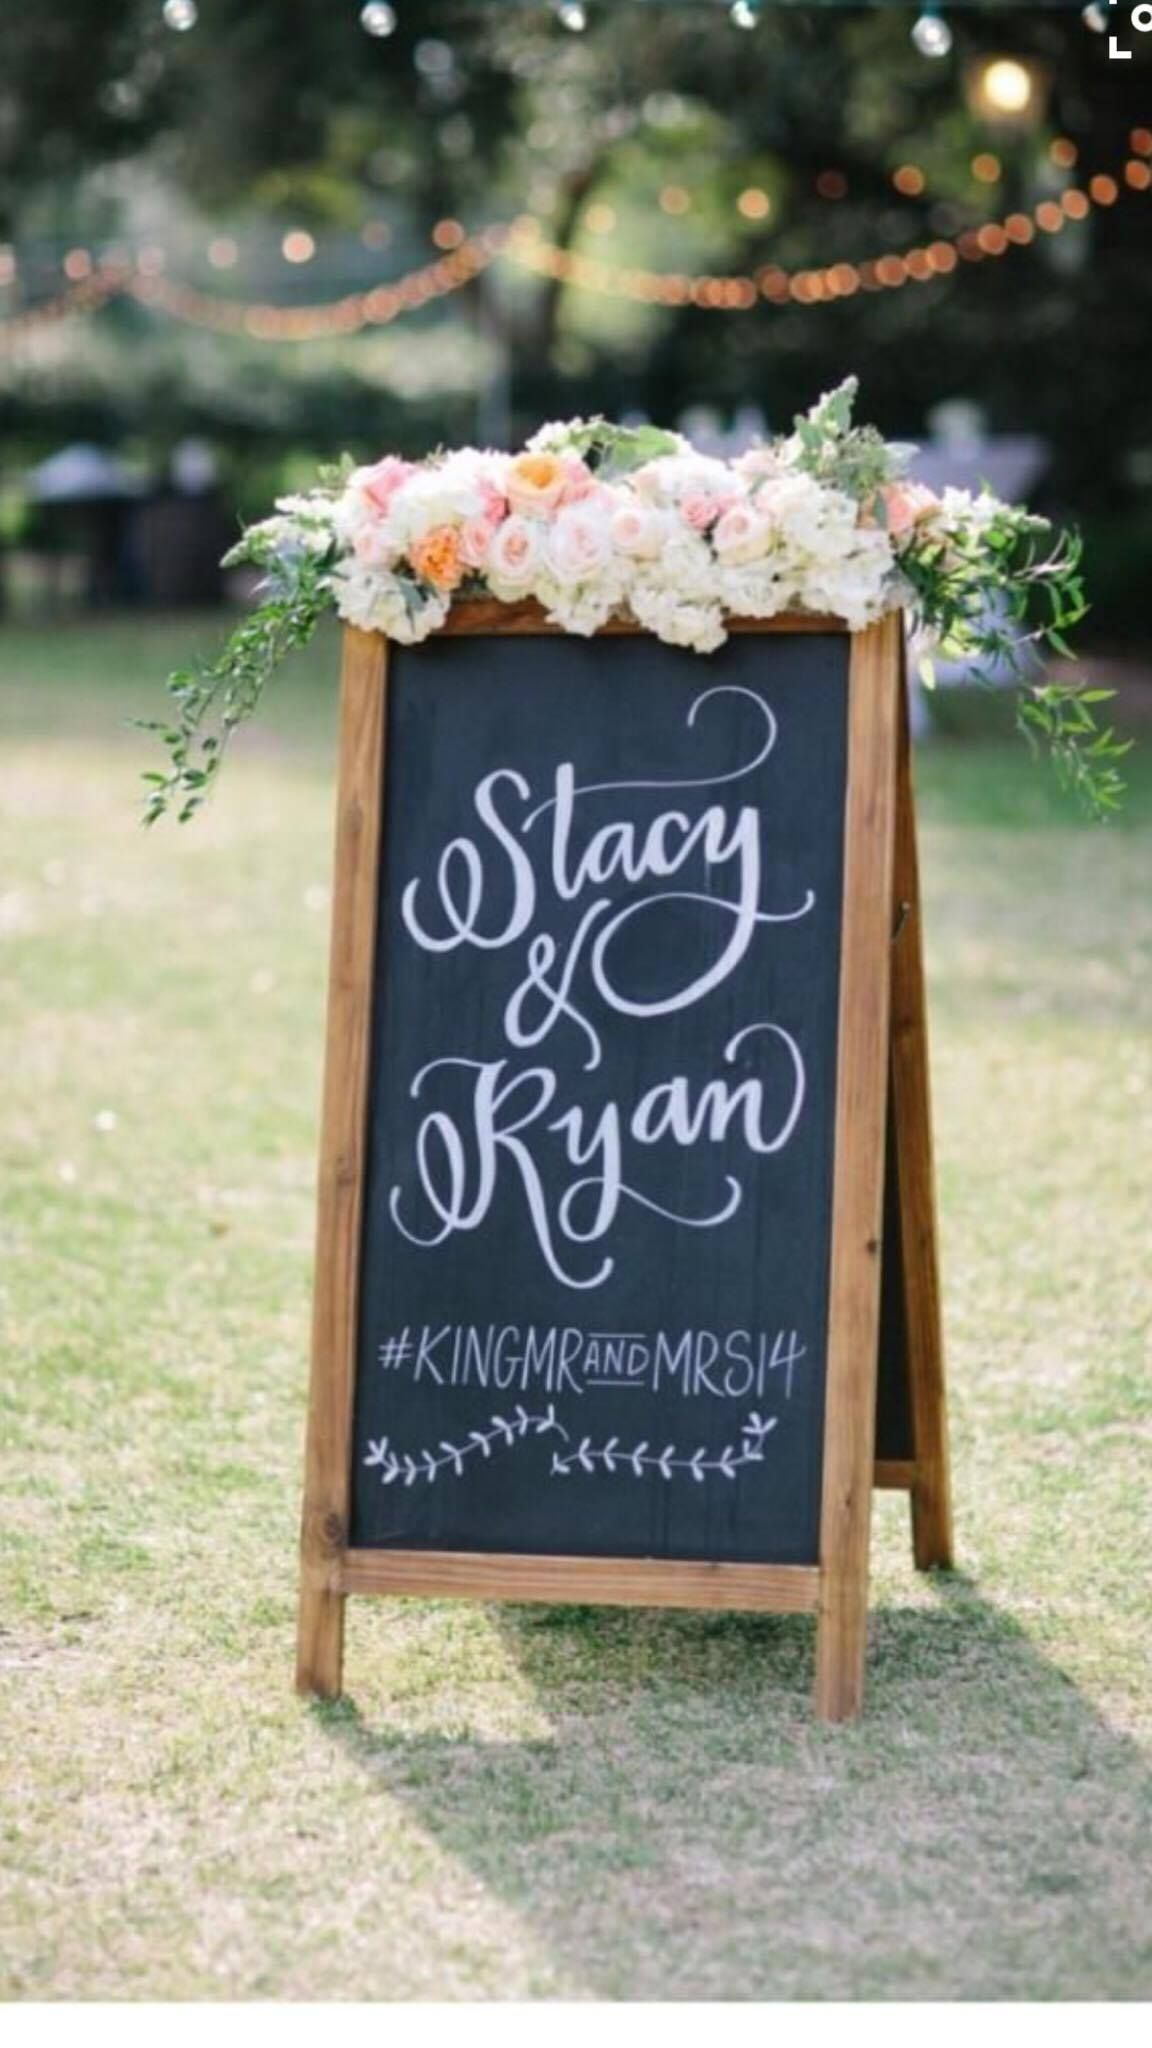 Contact us now for your custom chalkboard sign! https